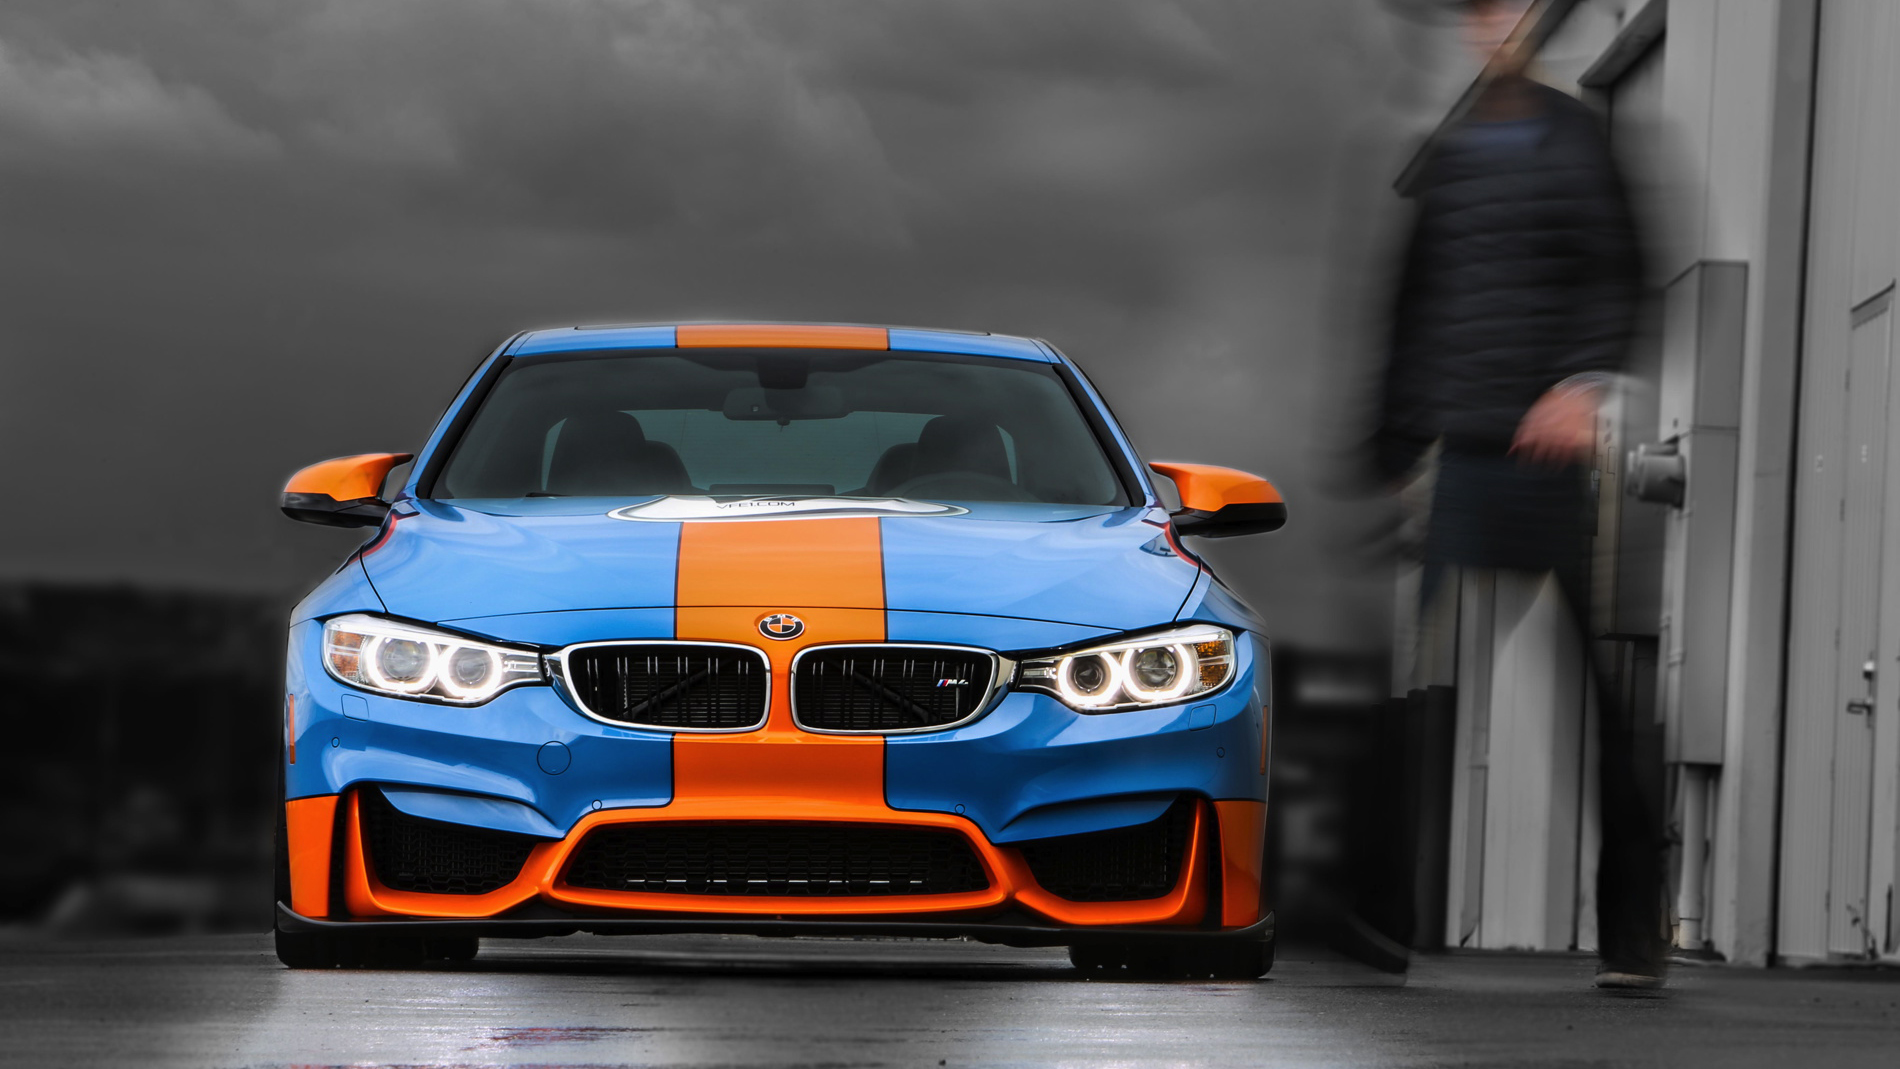 bmw m4 by hex tuning bmw car tuning. Black Bedroom Furniture Sets. Home Design Ideas